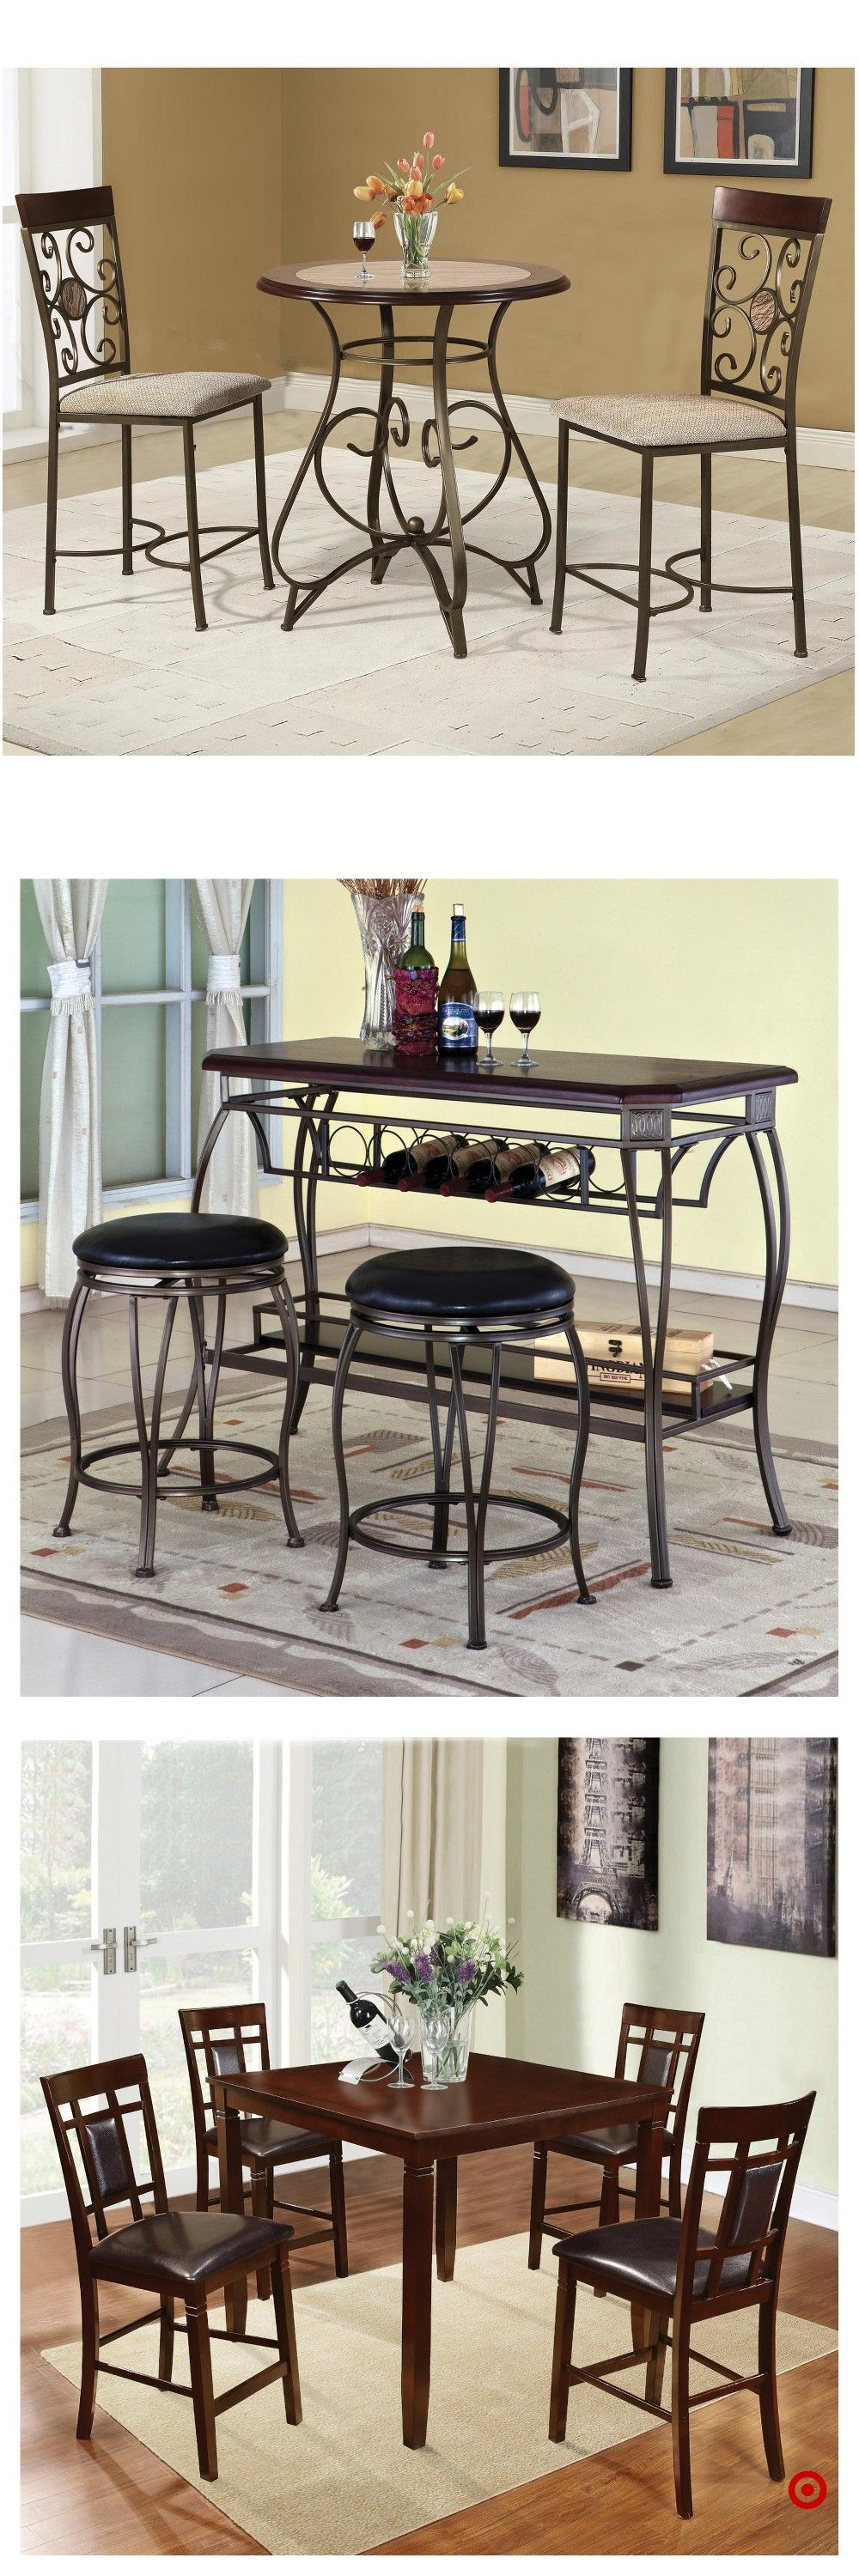 Shop Tar for counter height table set you will love at great